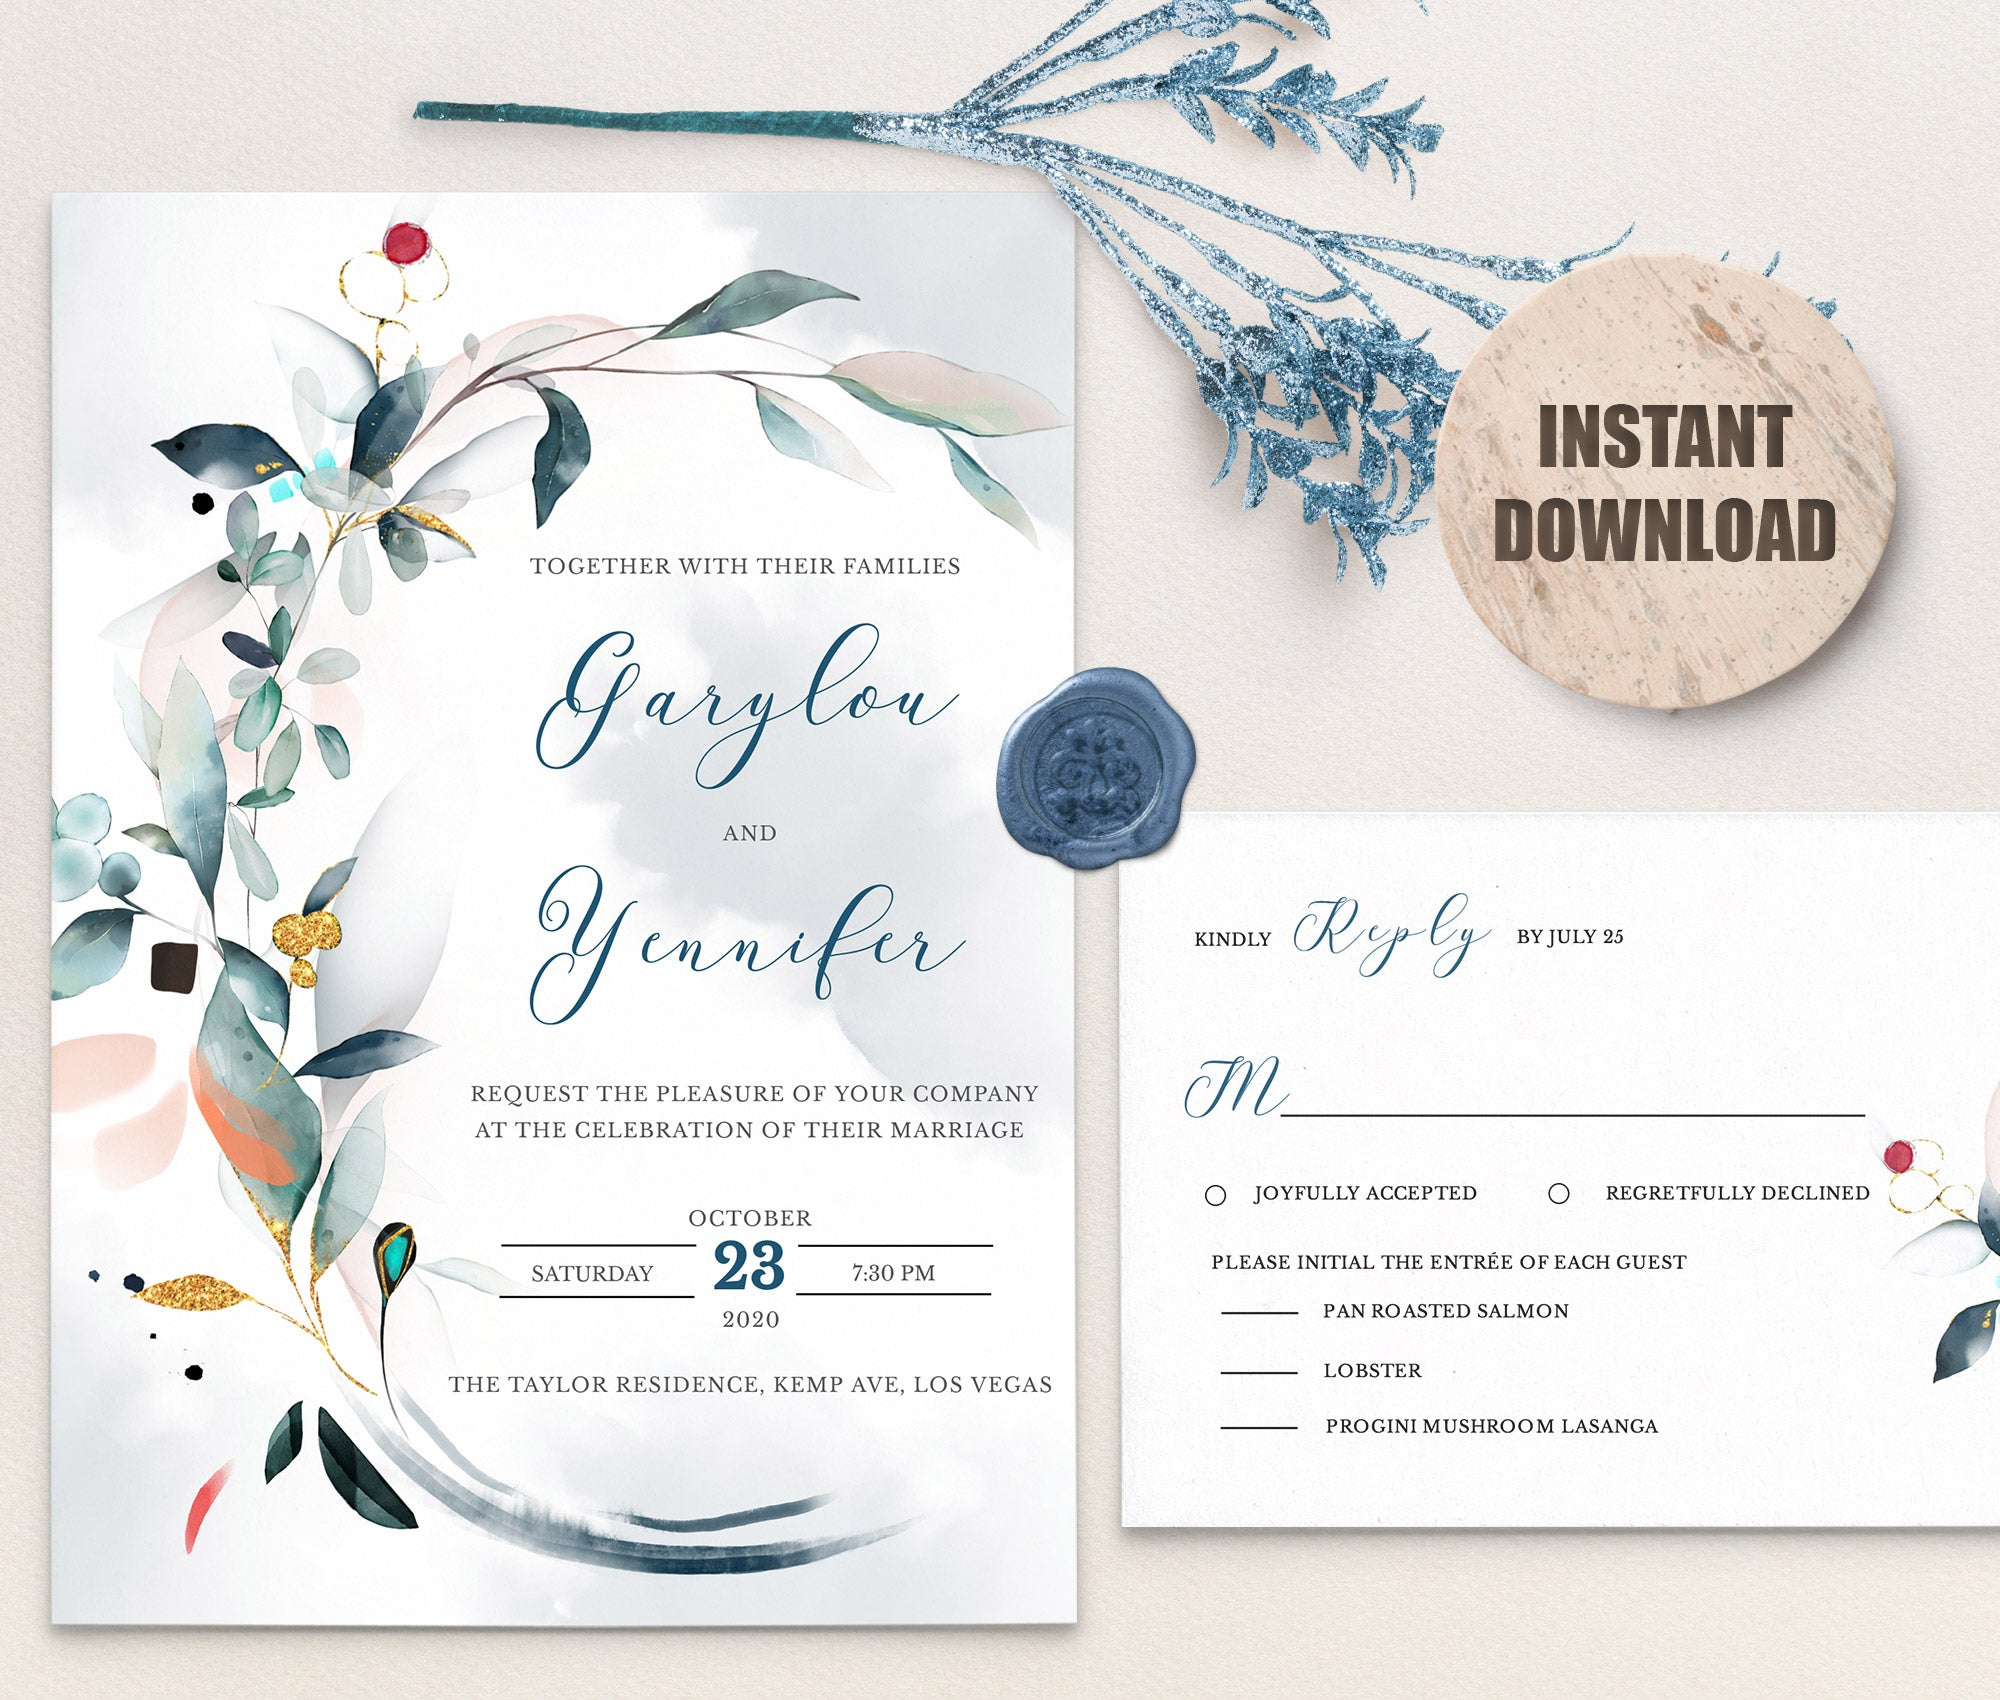 SPMR - Wedding Invitation and RSVP set 8 - Greenlanderdesign